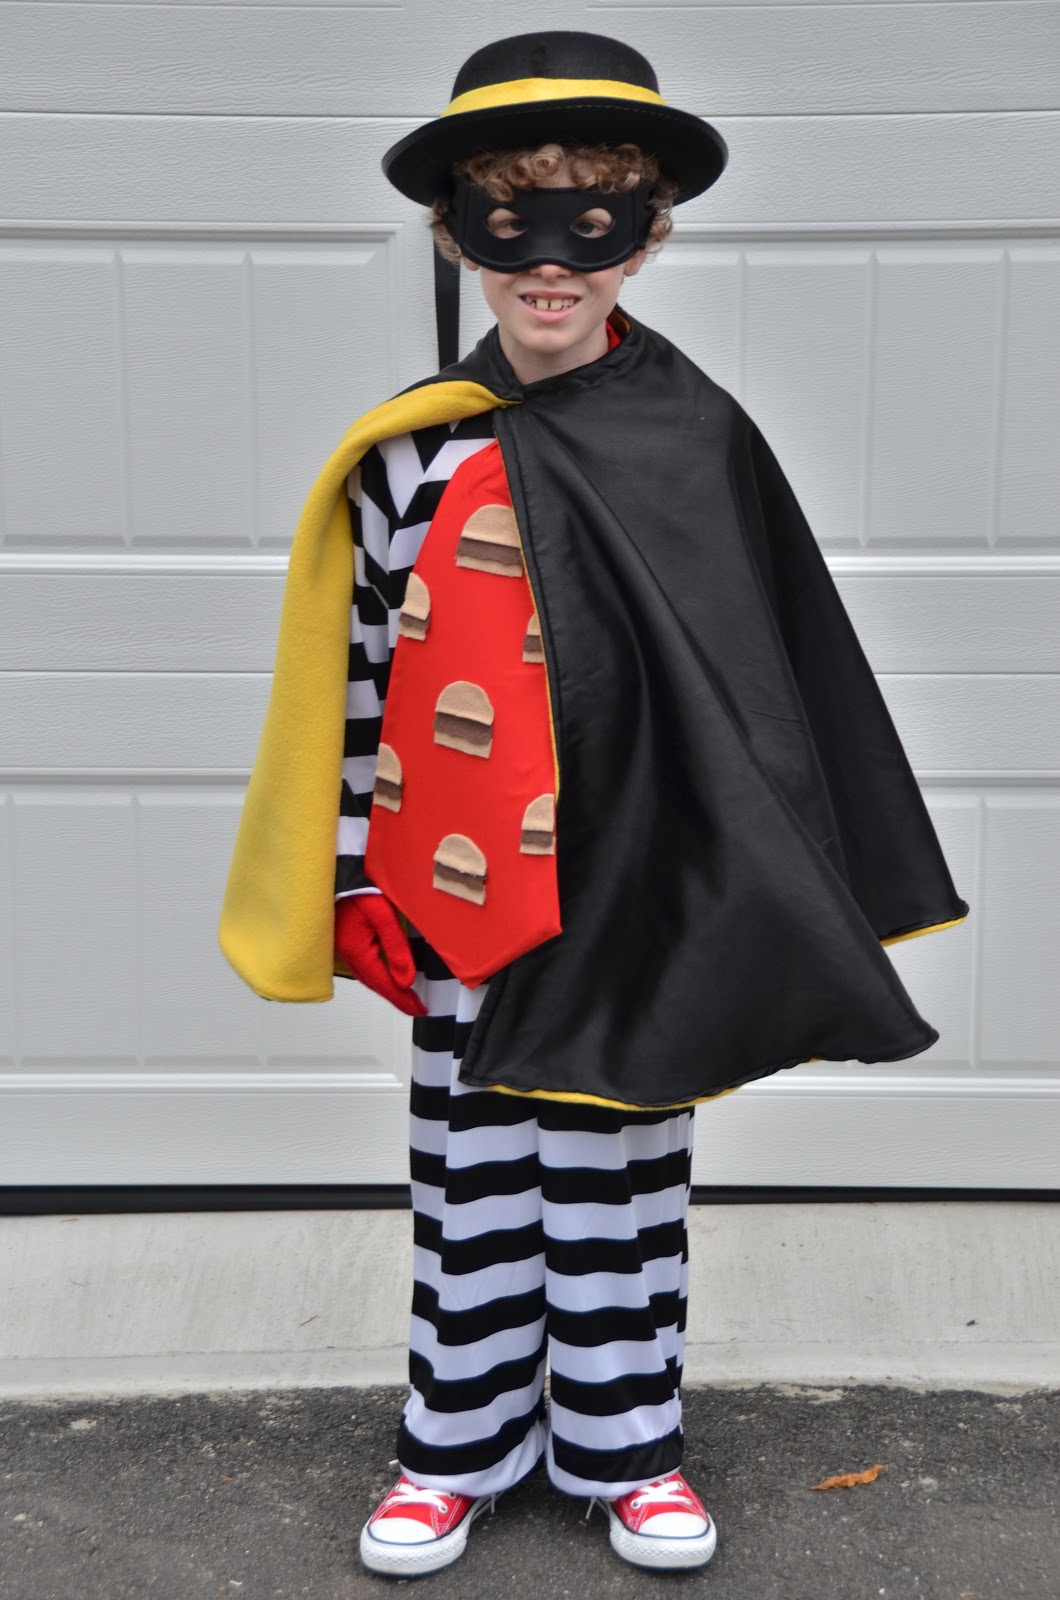 the princess and the frog blog halloween costumes 2012 a hamburger and the hamburglar